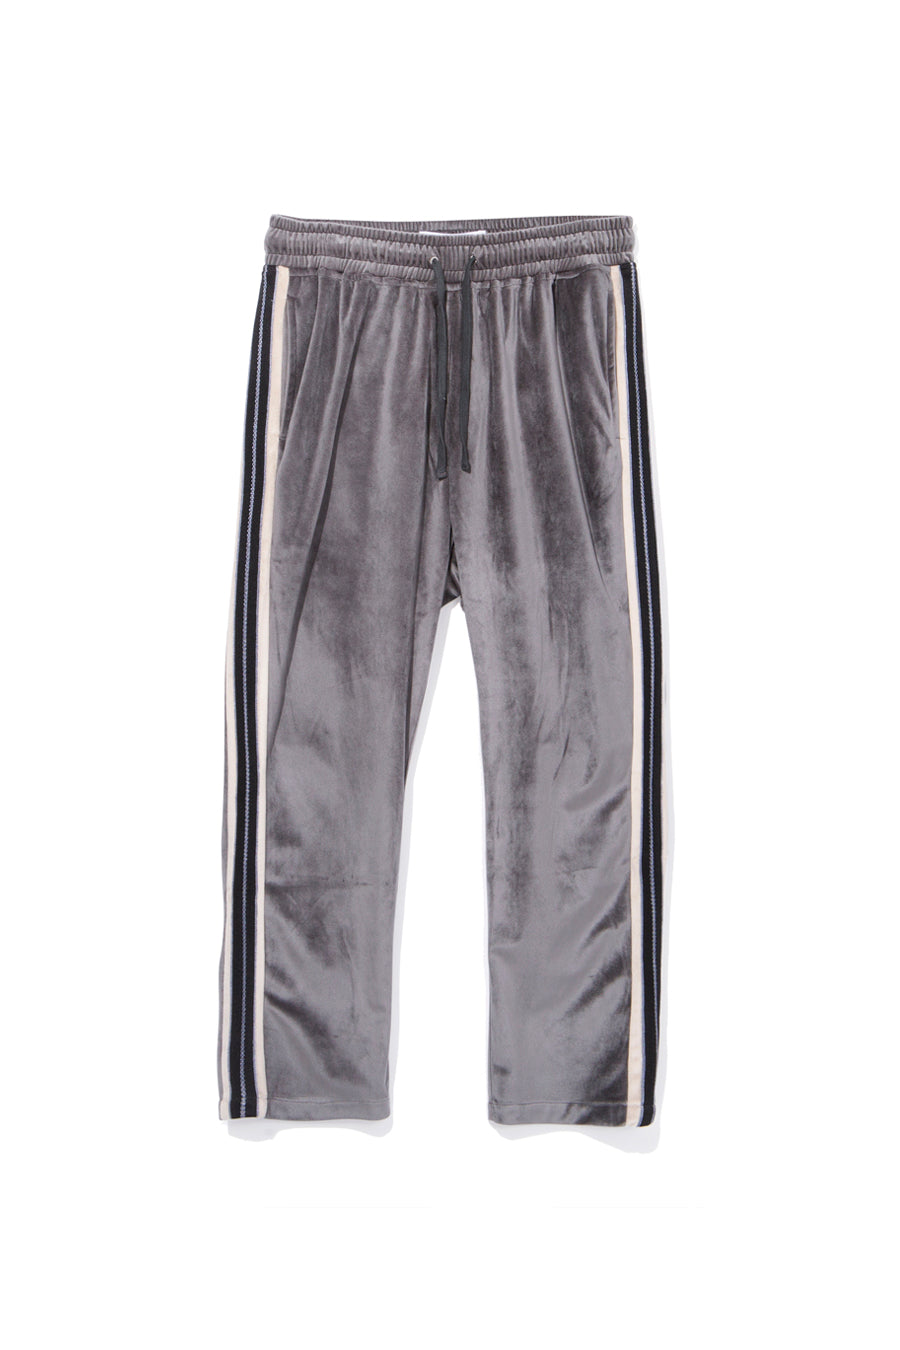 candorofficial - Track Pant, Ice Blue - Bottoms